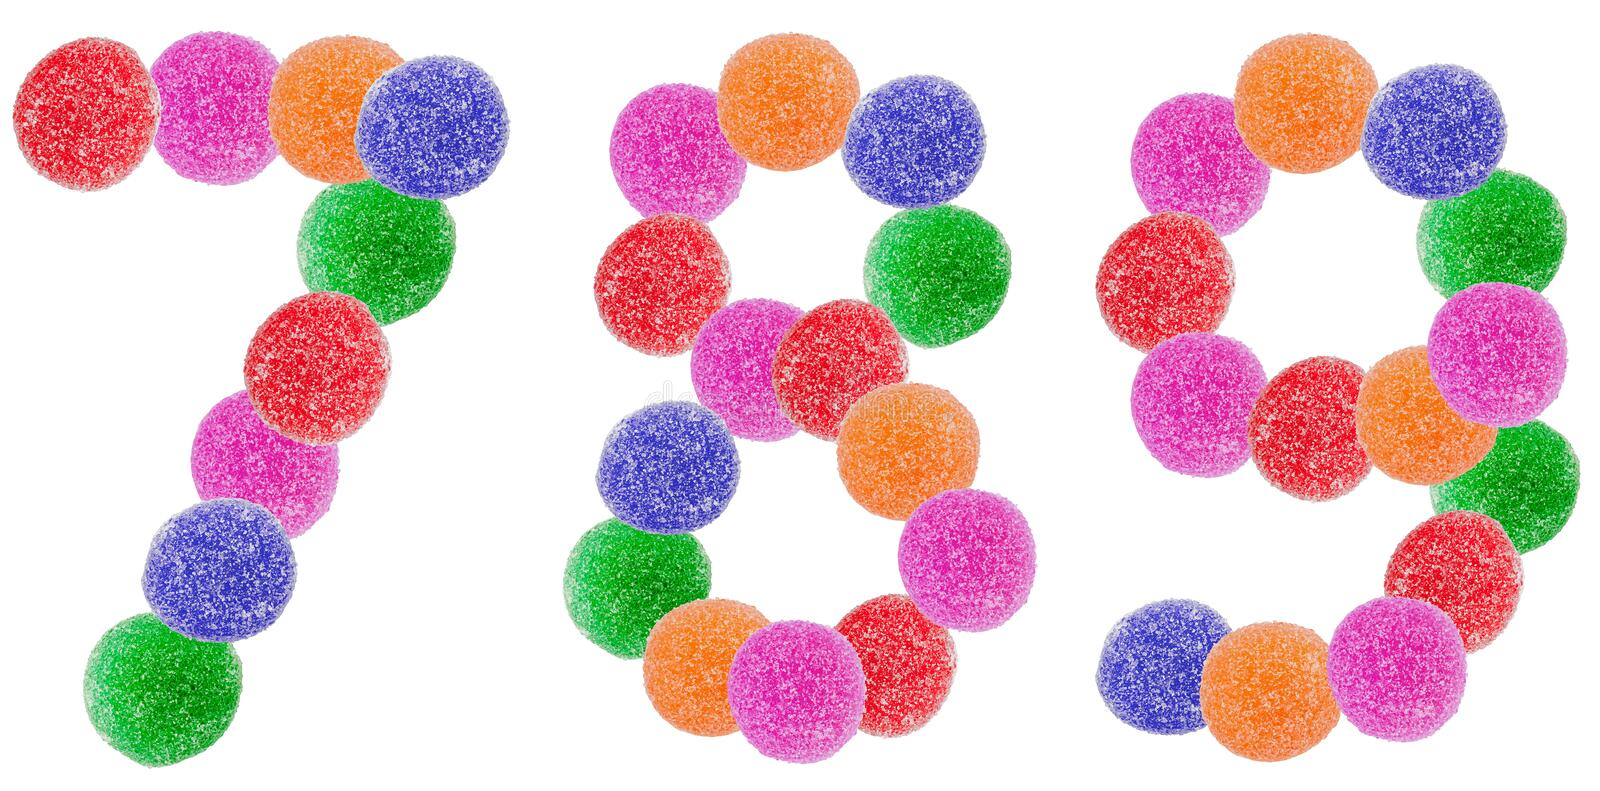 Jelly Candy Numbers royalty free stock photos